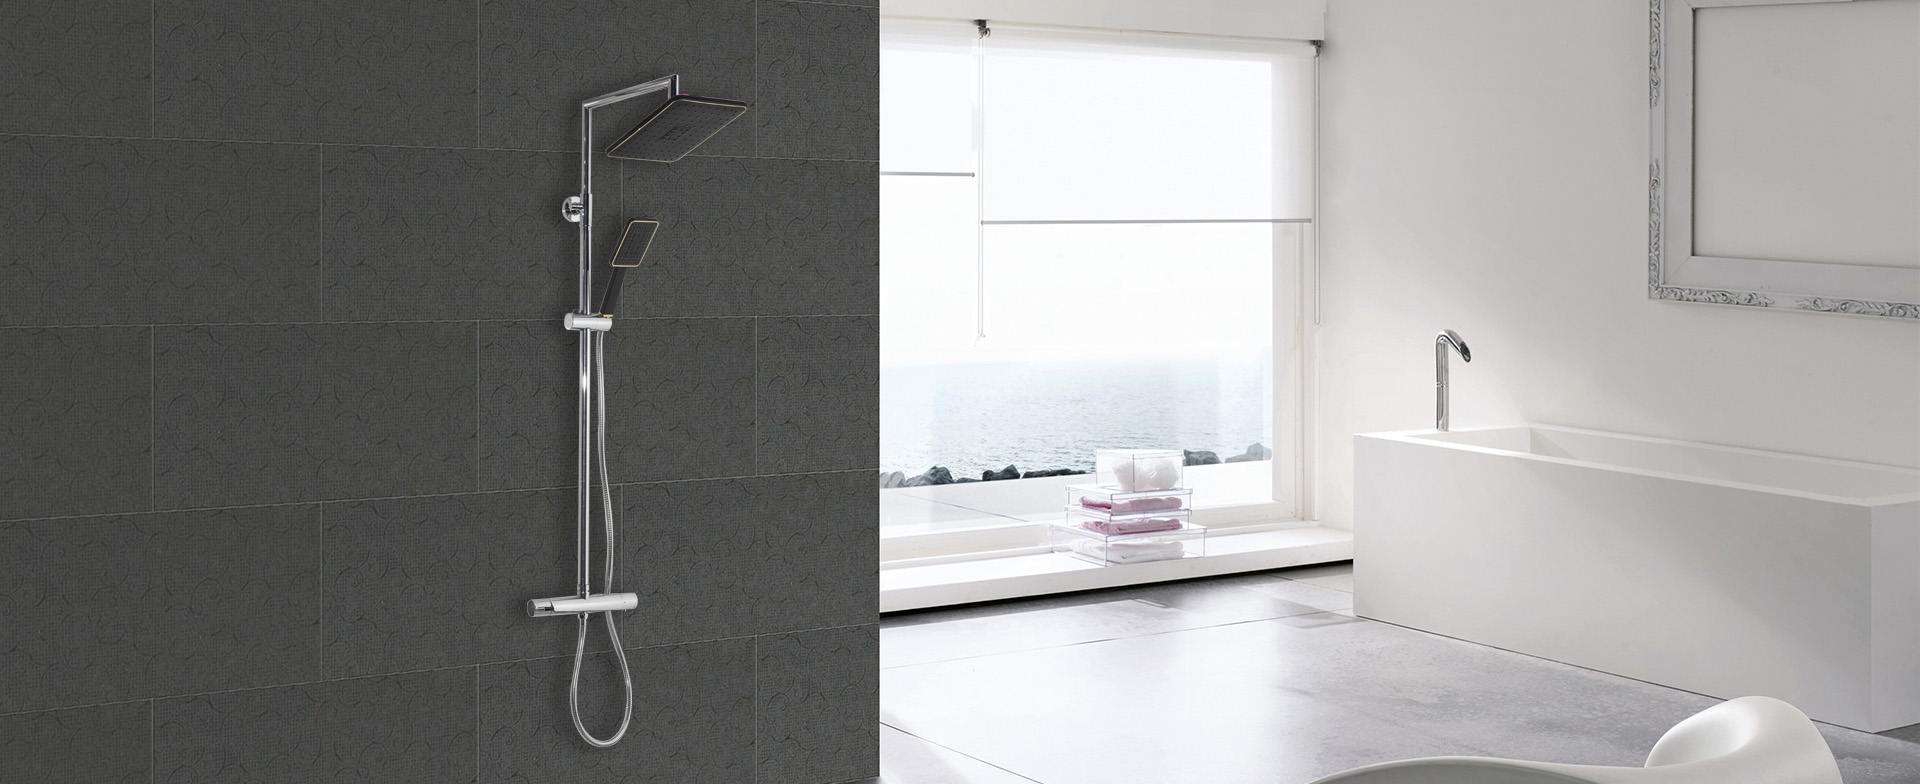 Considerations for choosing a shower head